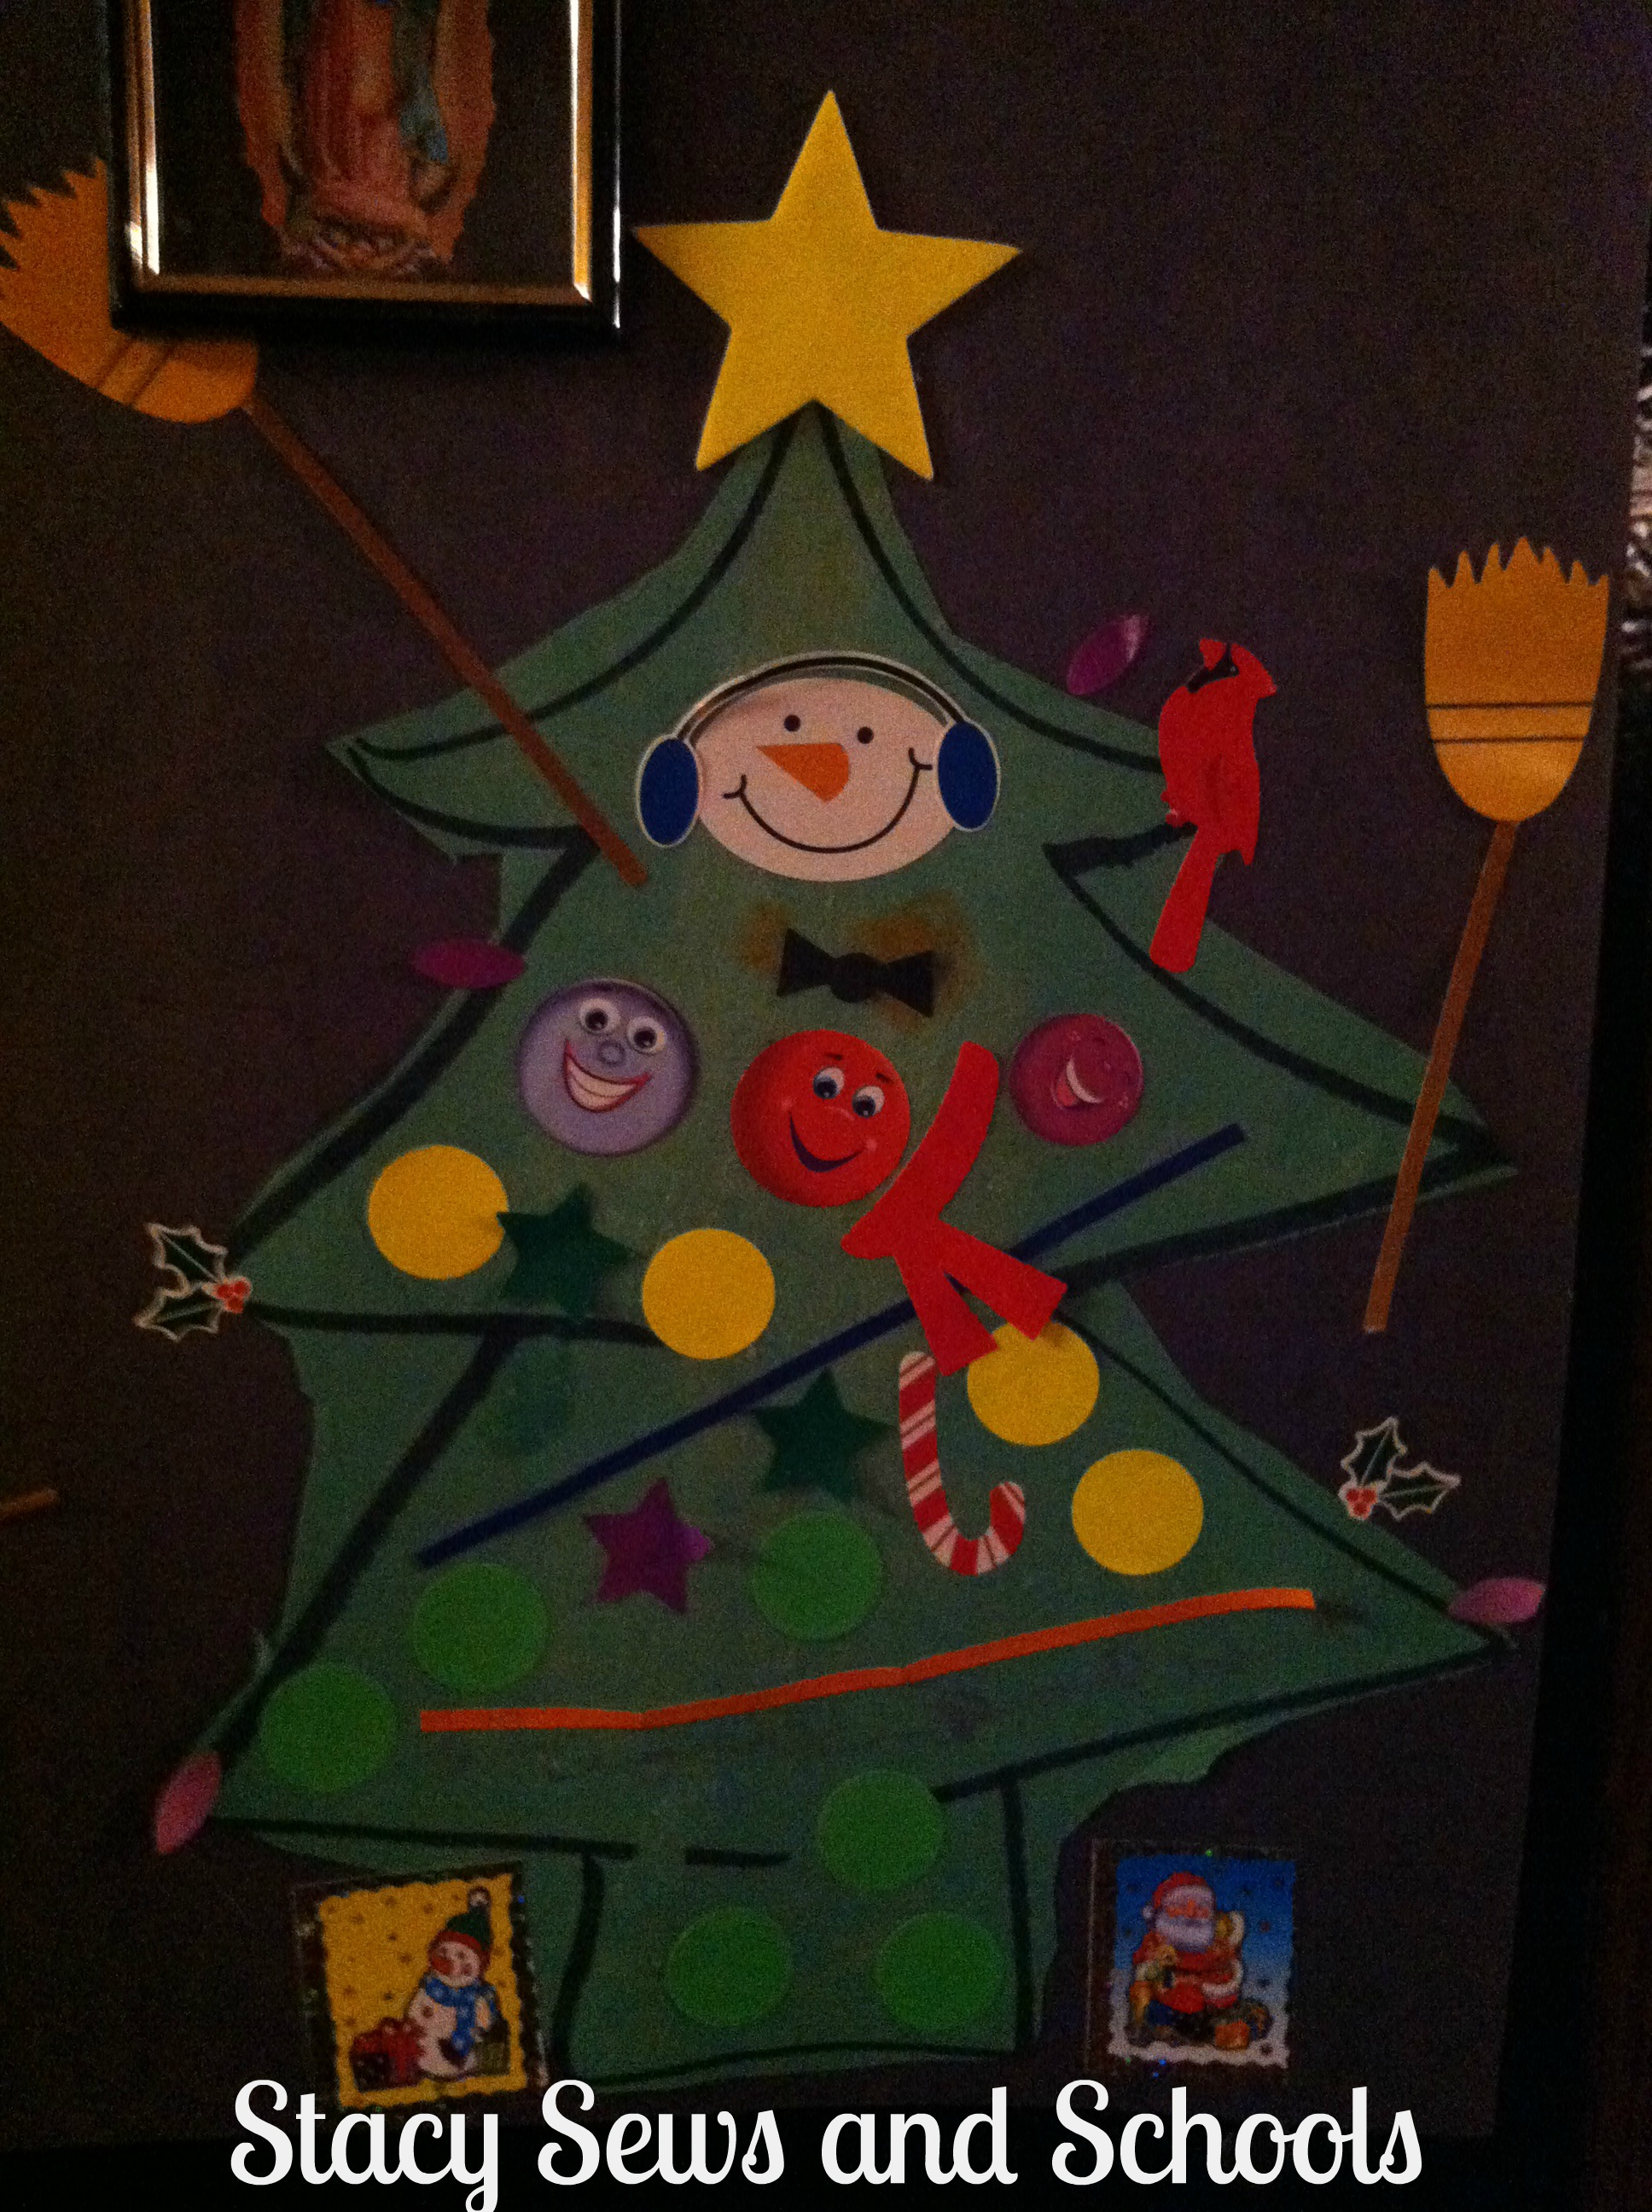 Colin's Christmas tree art